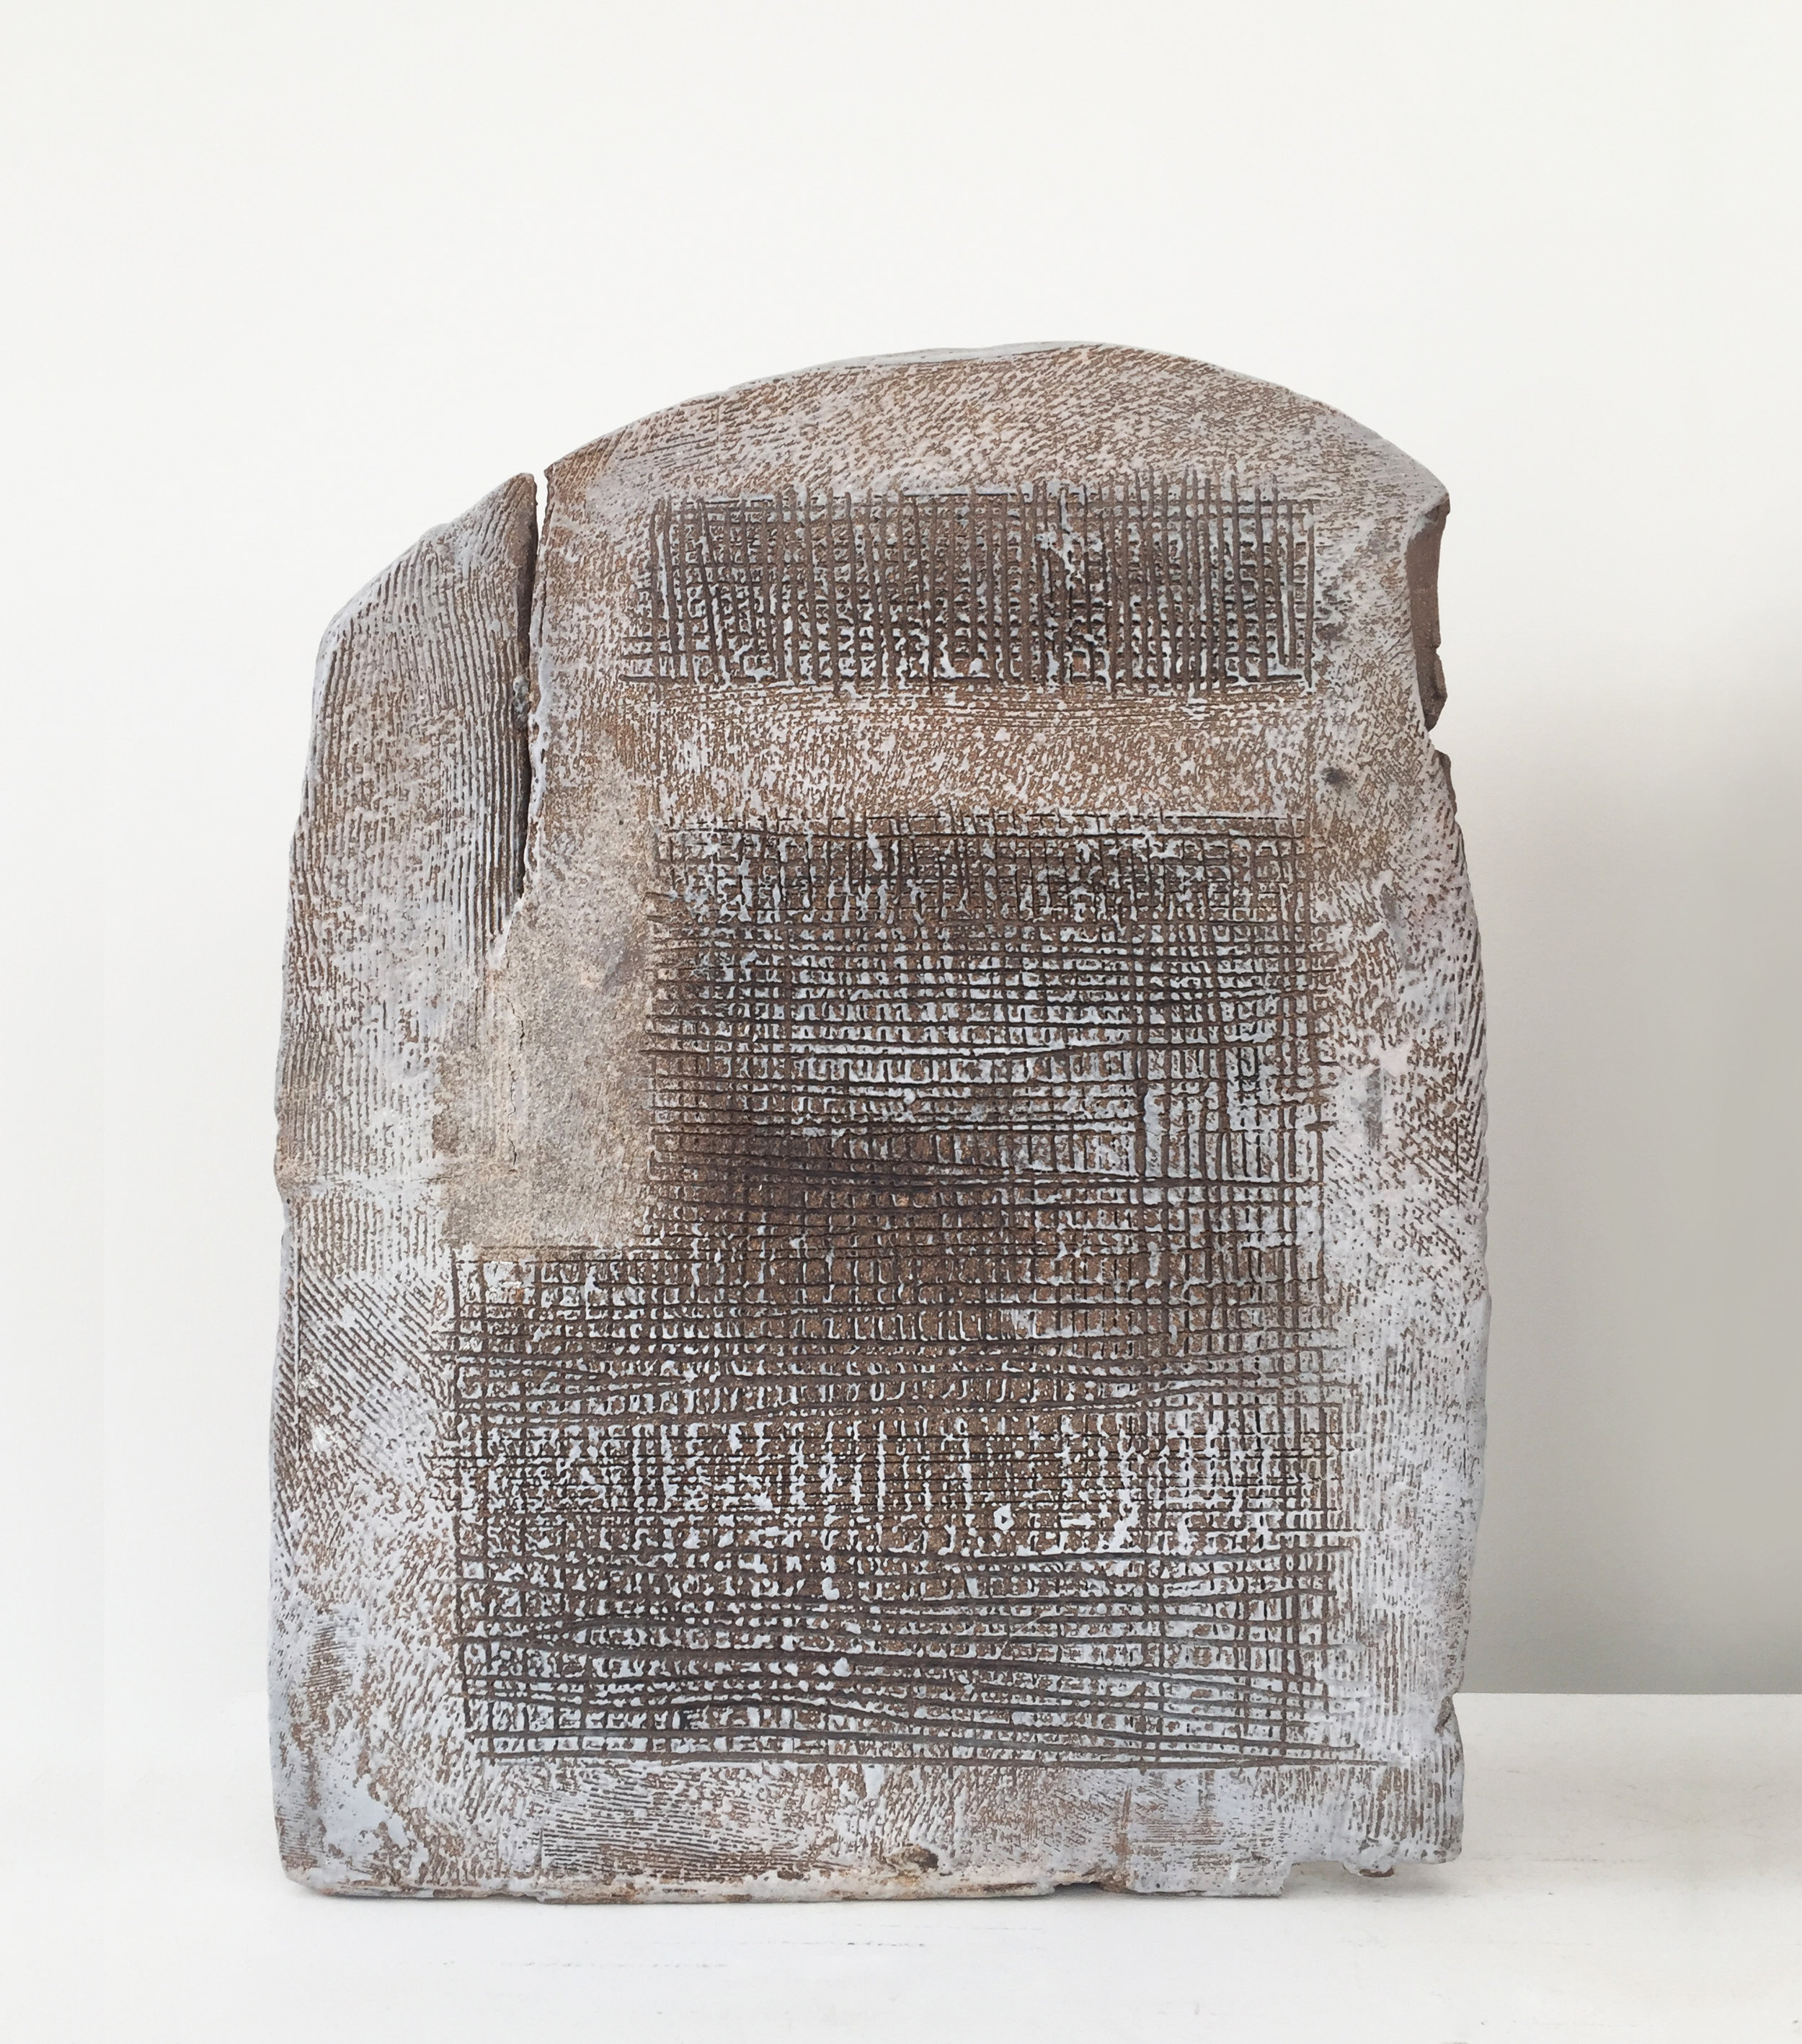 Toni Ross  Stele #28 , 2016 stoneware and slip  17 x 13 1/8 x 5 1/2 in.